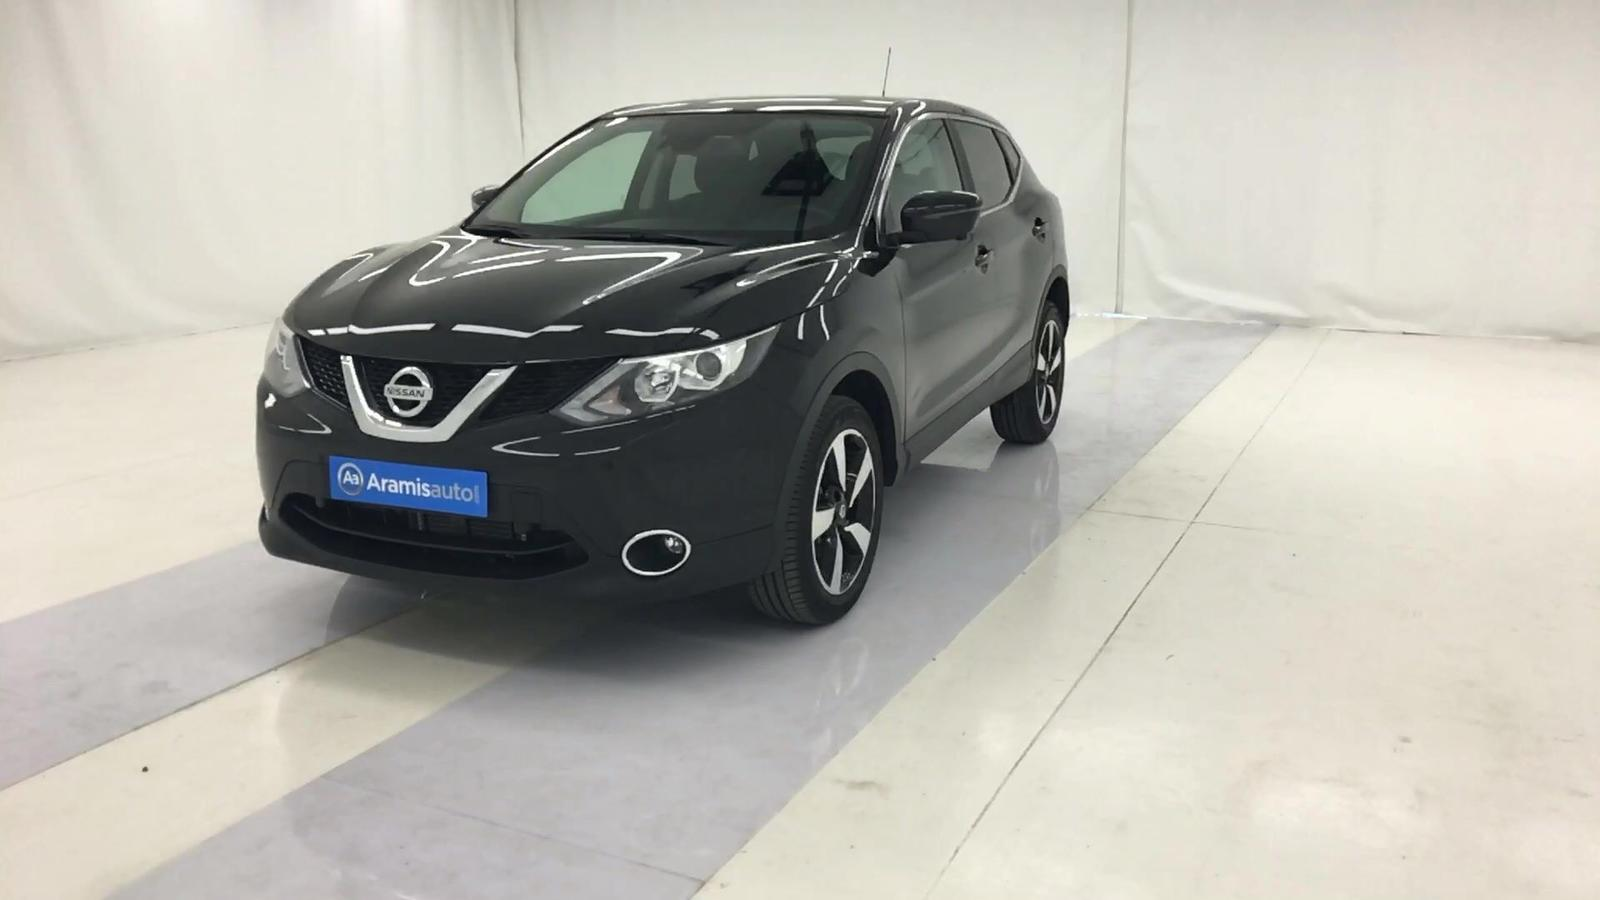 nissan qashqai nouveau 4x2 et suv 5 portes diesel 1 6 dci 130 xtronic a bo te. Black Bedroom Furniture Sets. Home Design Ideas